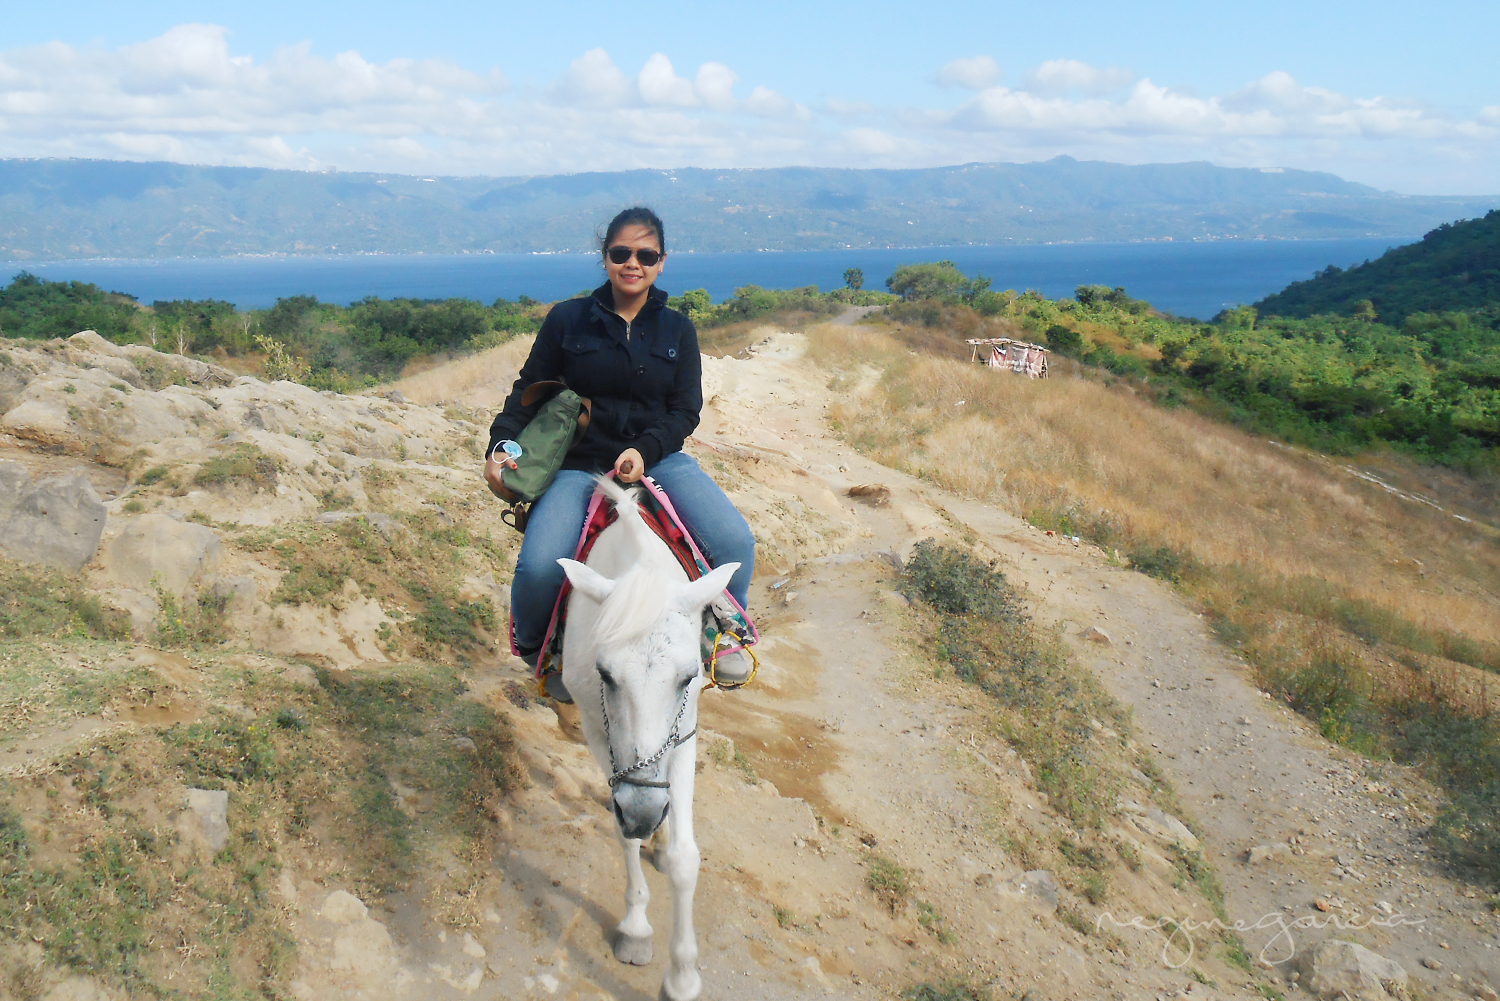 Nurturing that instant relationship of a woman and a horse - so natural, so magical. (On a steep terrain towards the crater)